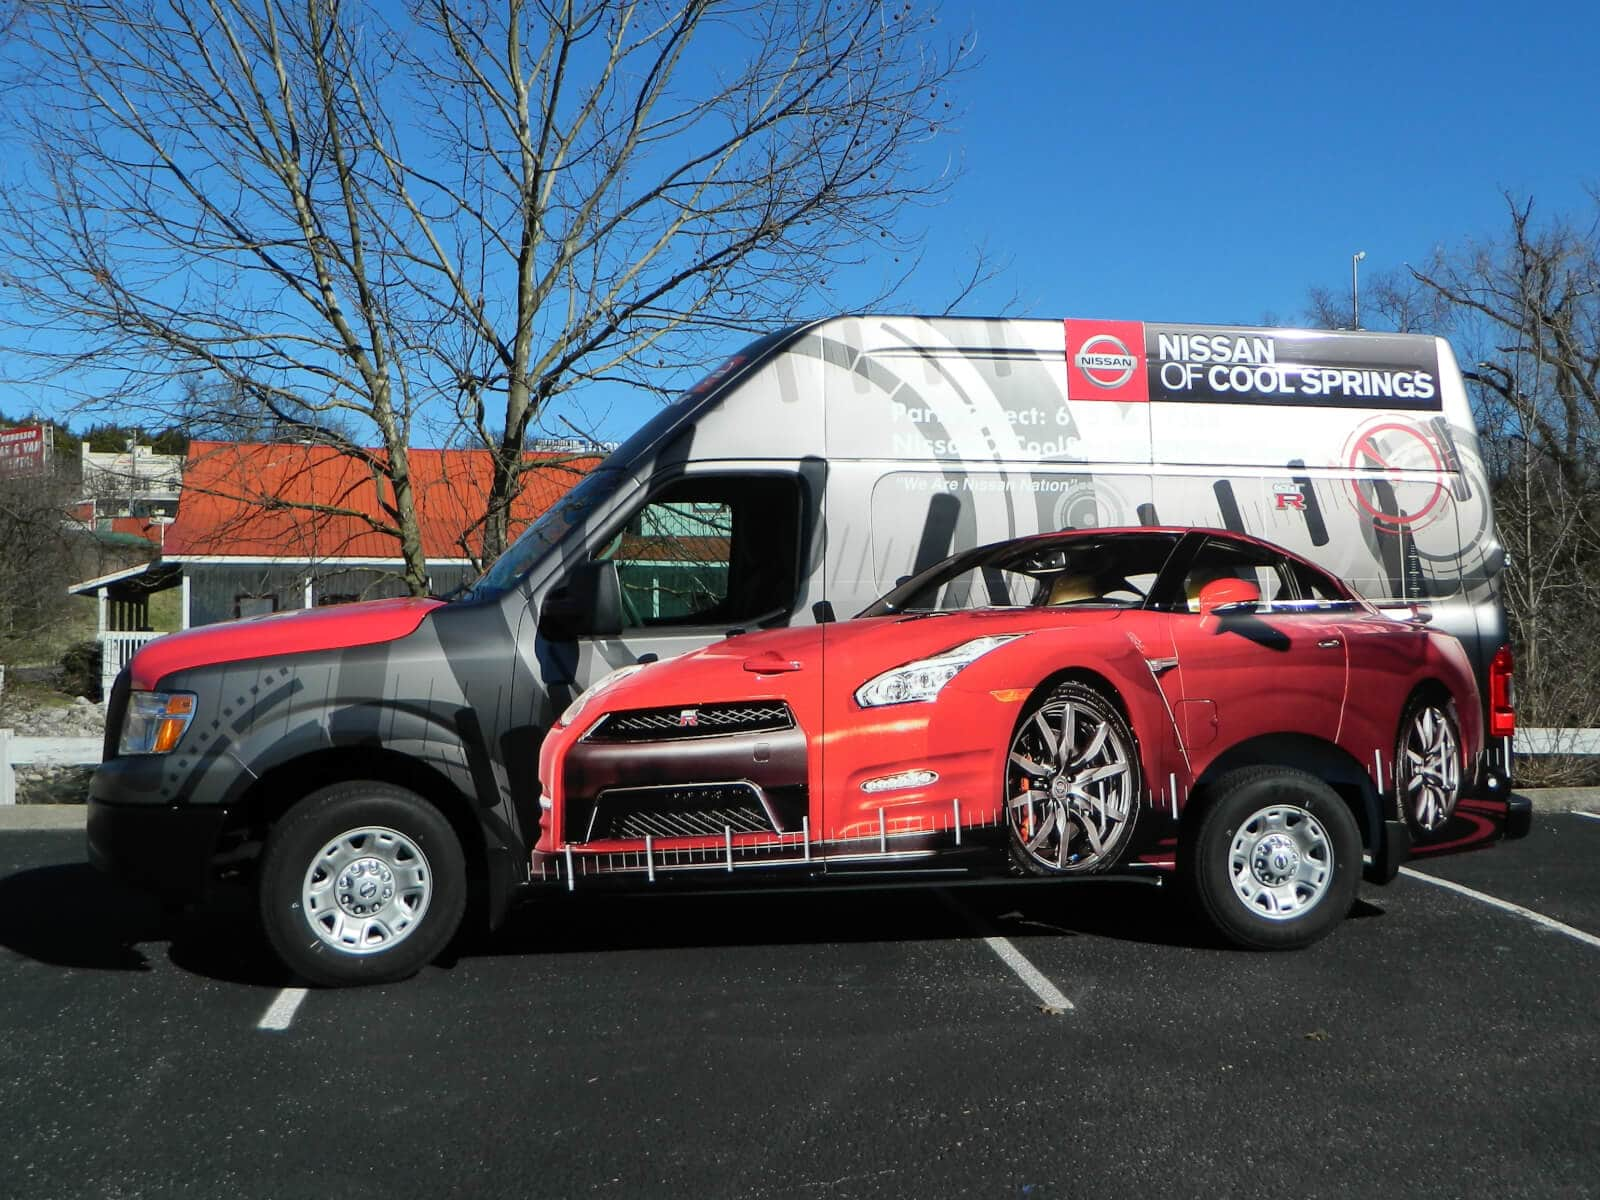 nissan of cool springs vehicle wrap – 12-point signworks